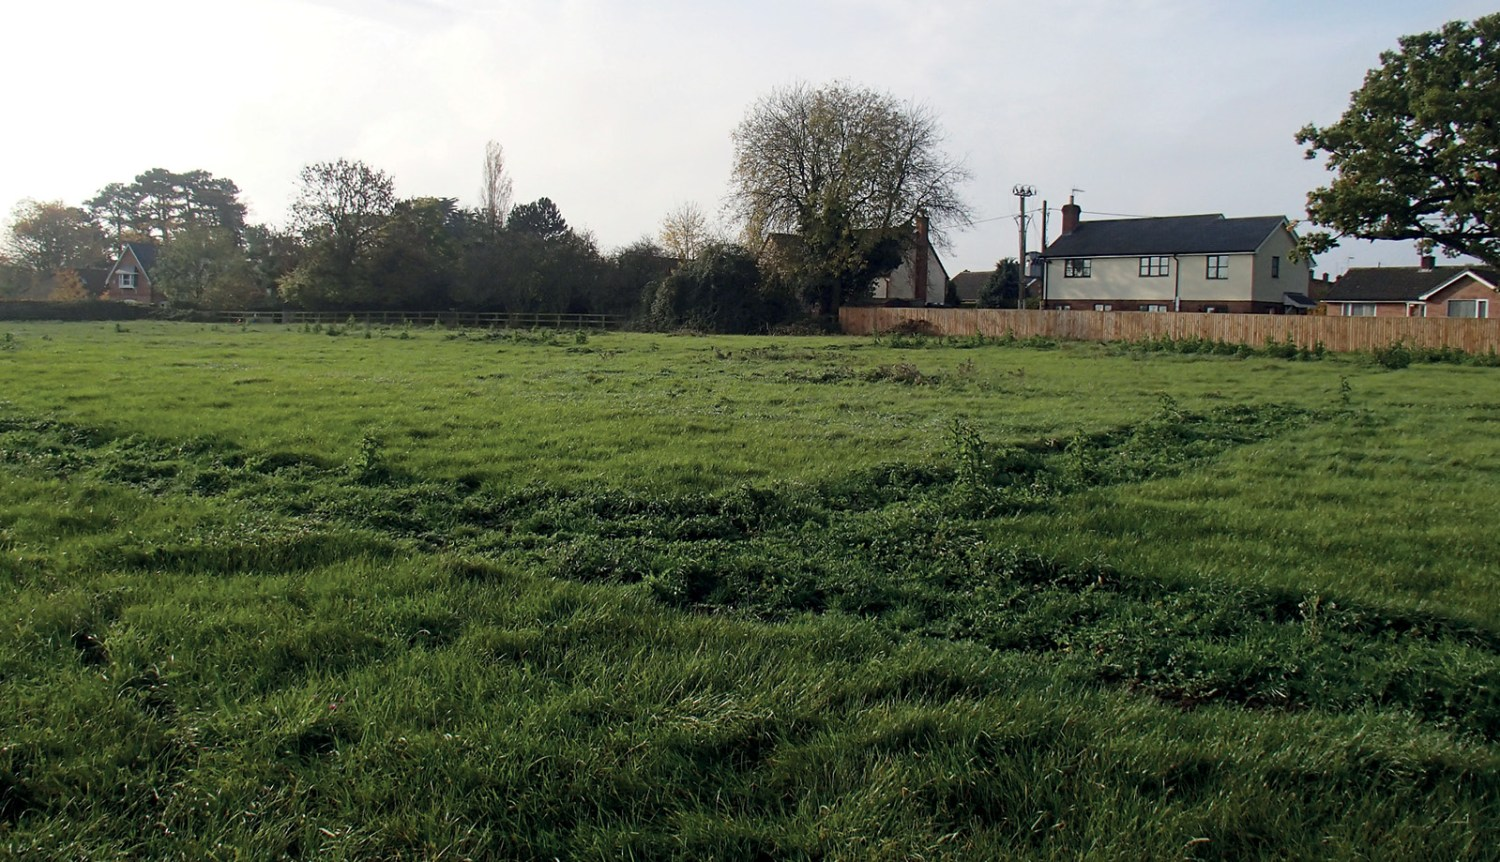 BELOW The smithy site was reasonably well preserved, despite being historically under the plough; the original building seems to have been constructed on empty land, and the site returned to 'green field' after it was abandoned.